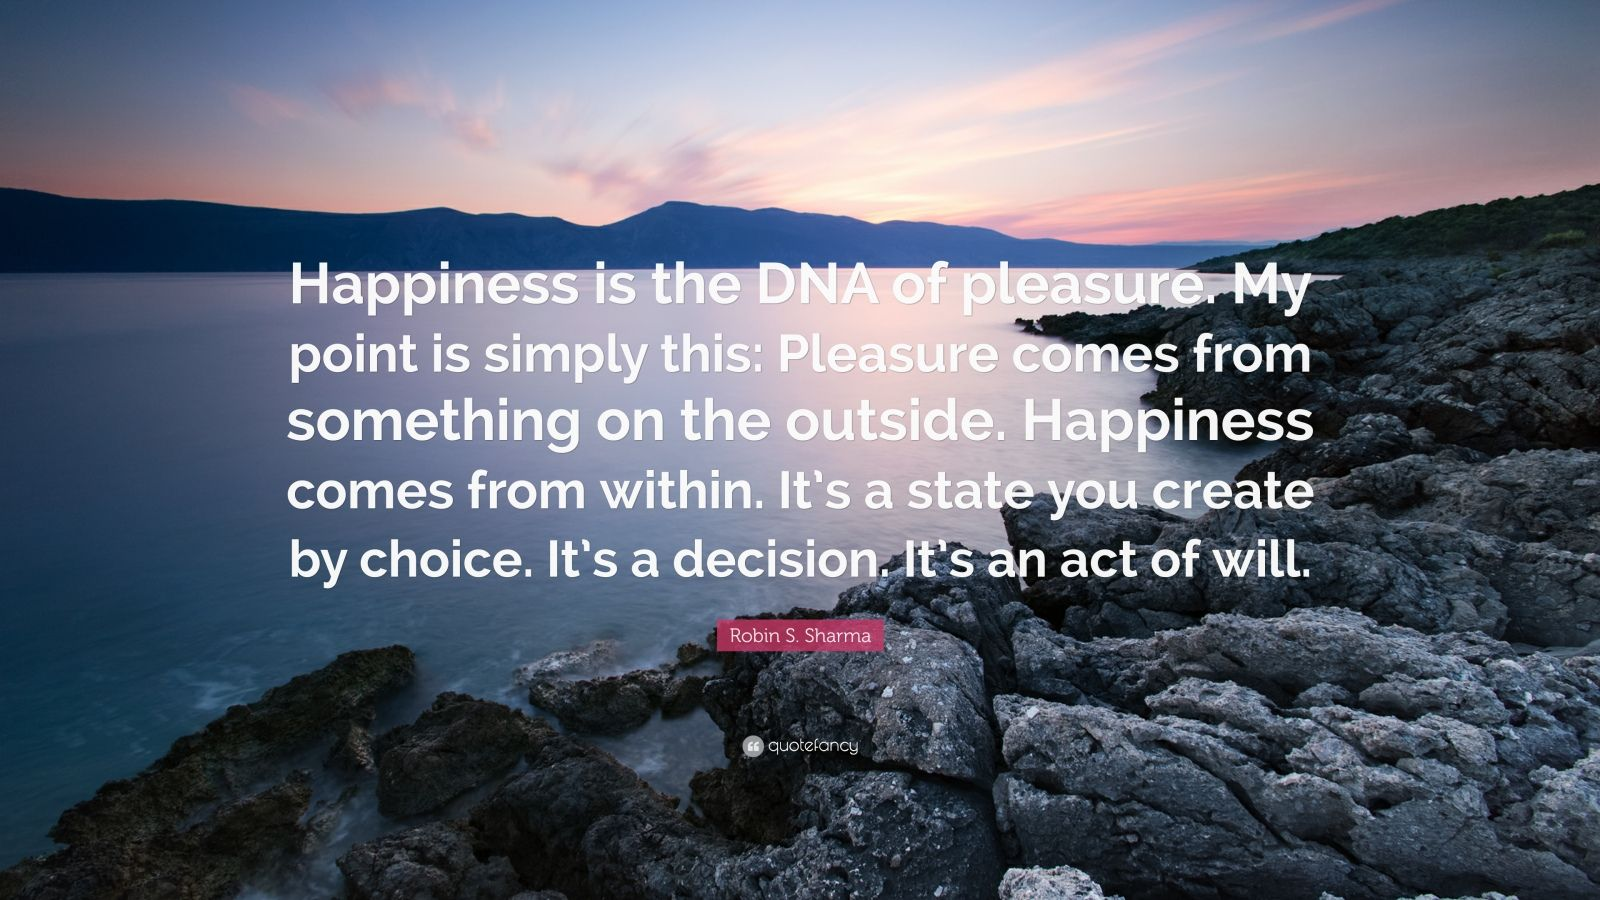 """Robin S. Sharma Quote: """"Happiness is the DNA of pleasure. My point is simply this: Pleasure comes from something on the outside. Happiness comes from within. It's a state you create by choice. It's a decision. It's an act of will."""""""